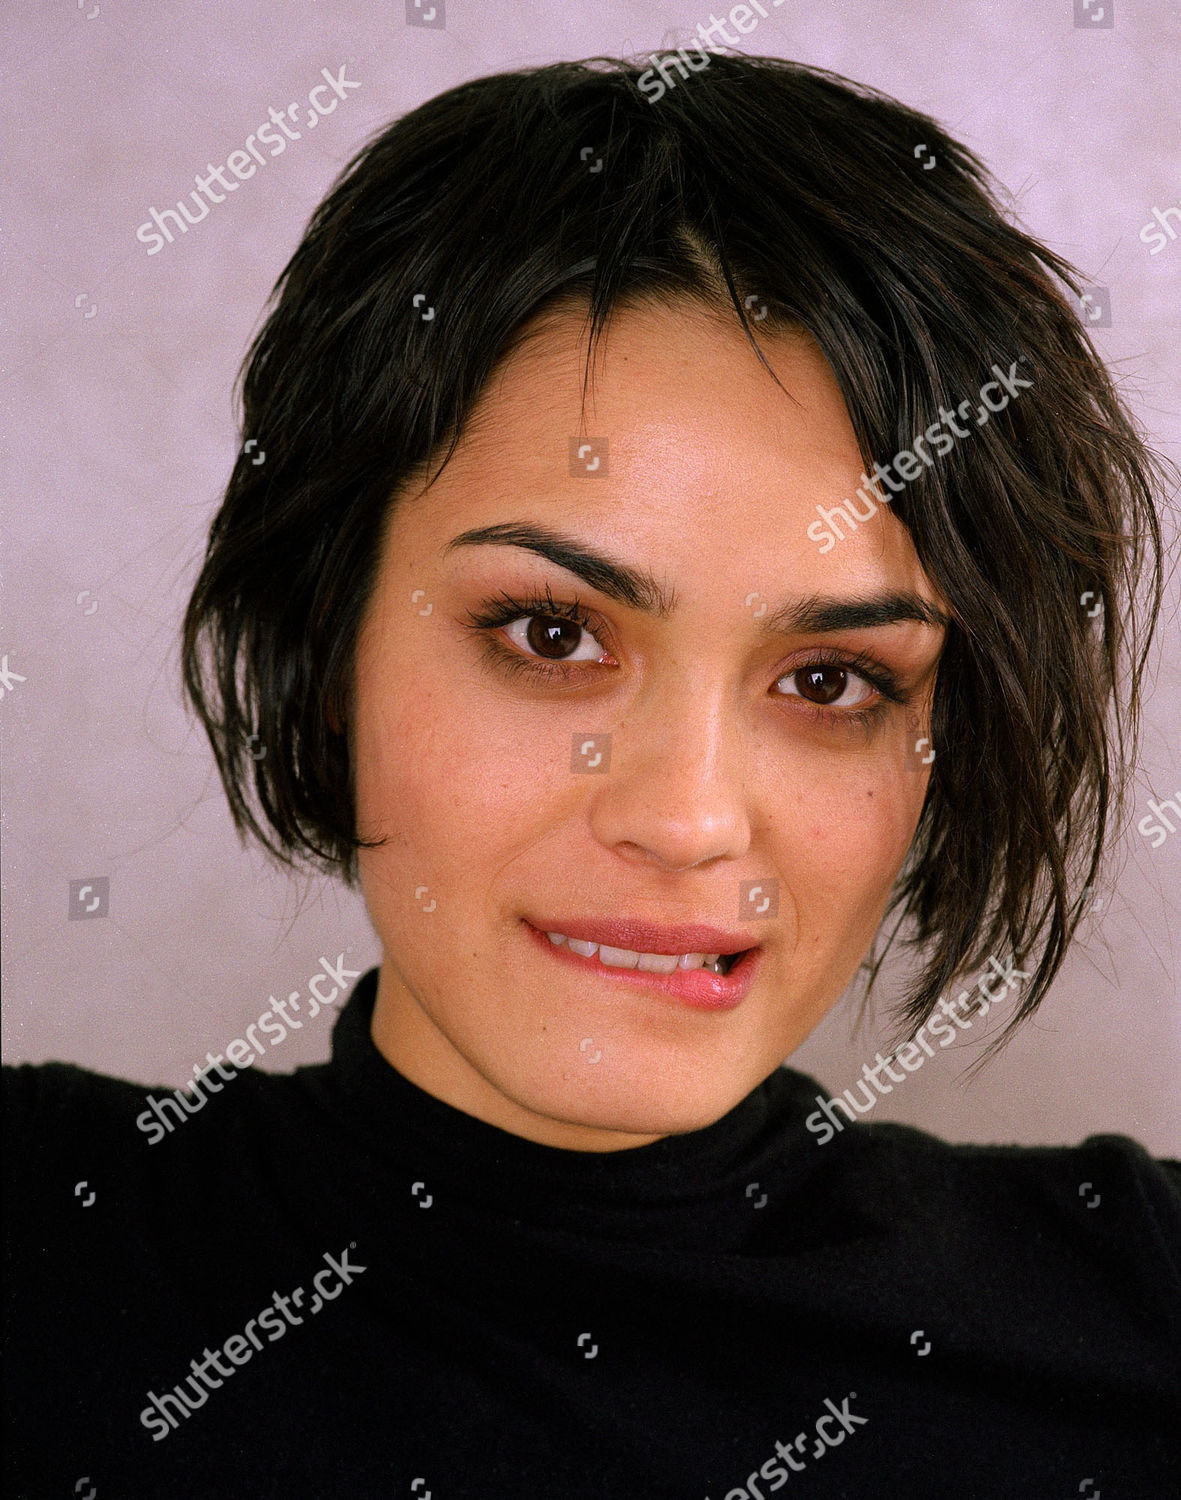 Wkd Fiveqs Shannyn Sossamon New York Usa Stock Image By Jim Cooper For Editorial Use Feb 9 2002